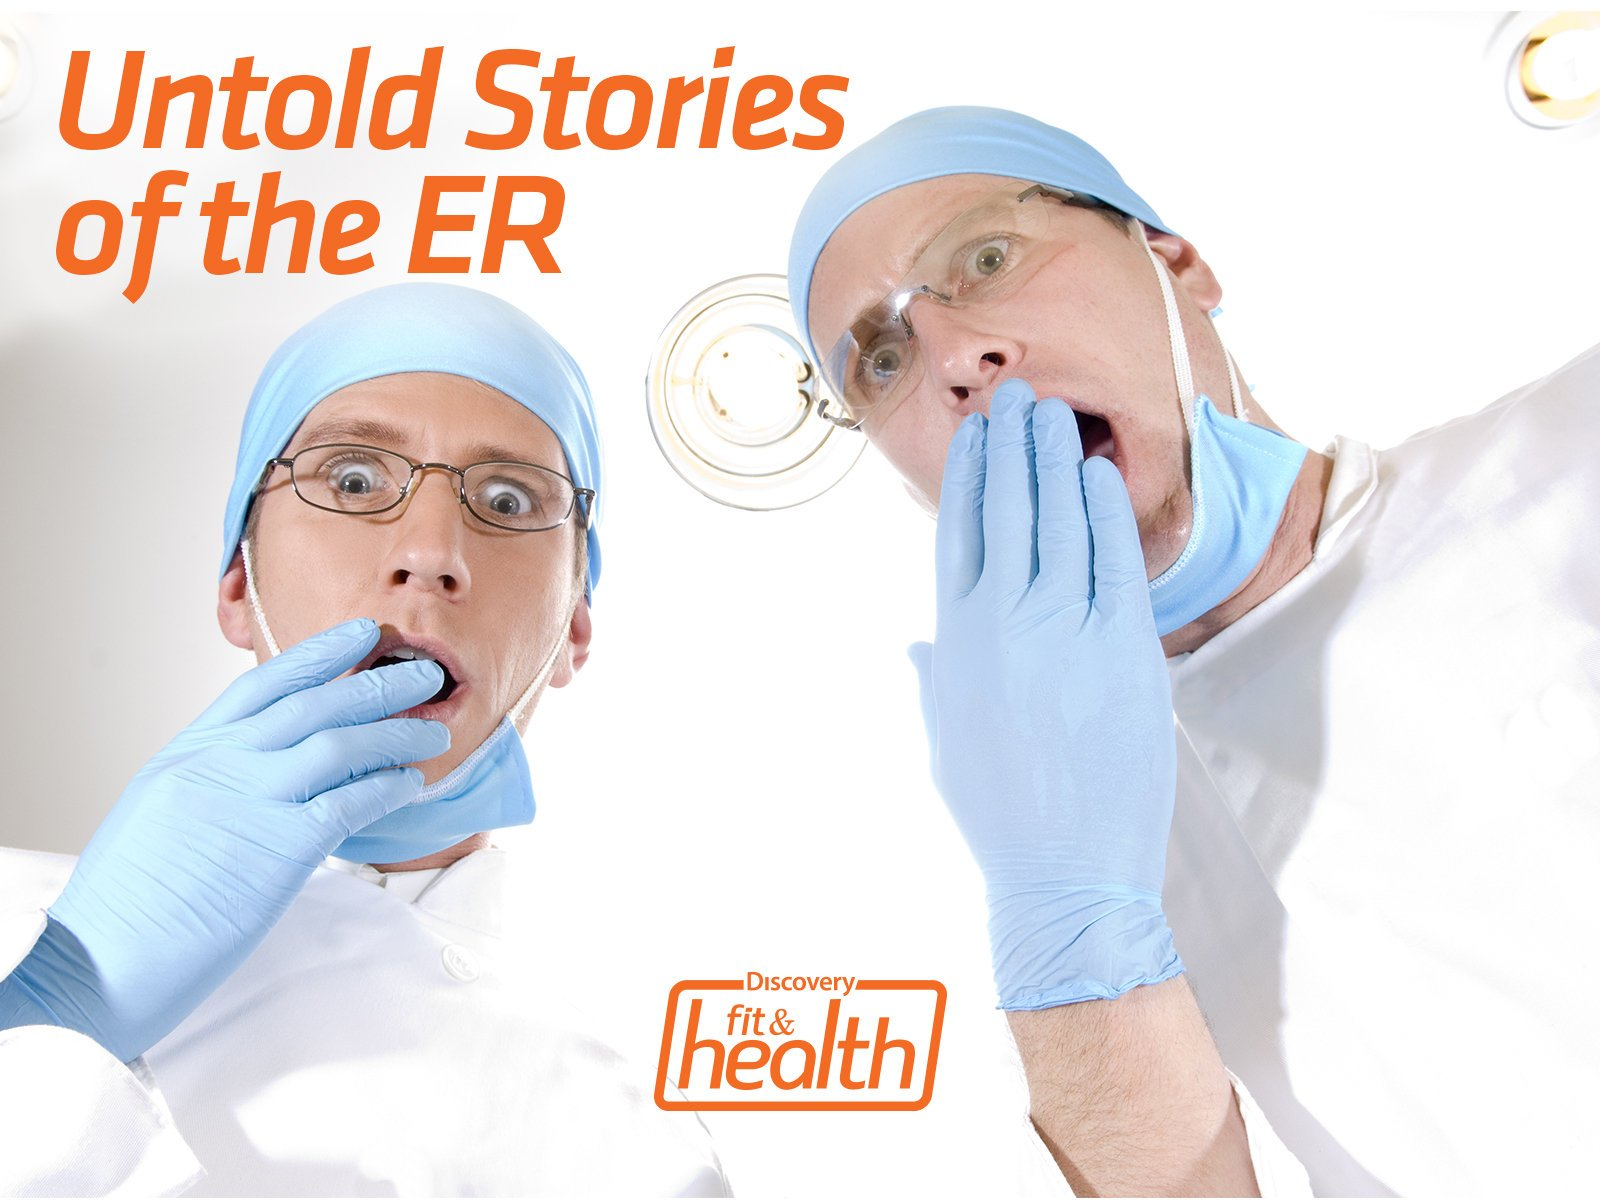 free episodes of untold stories of the er